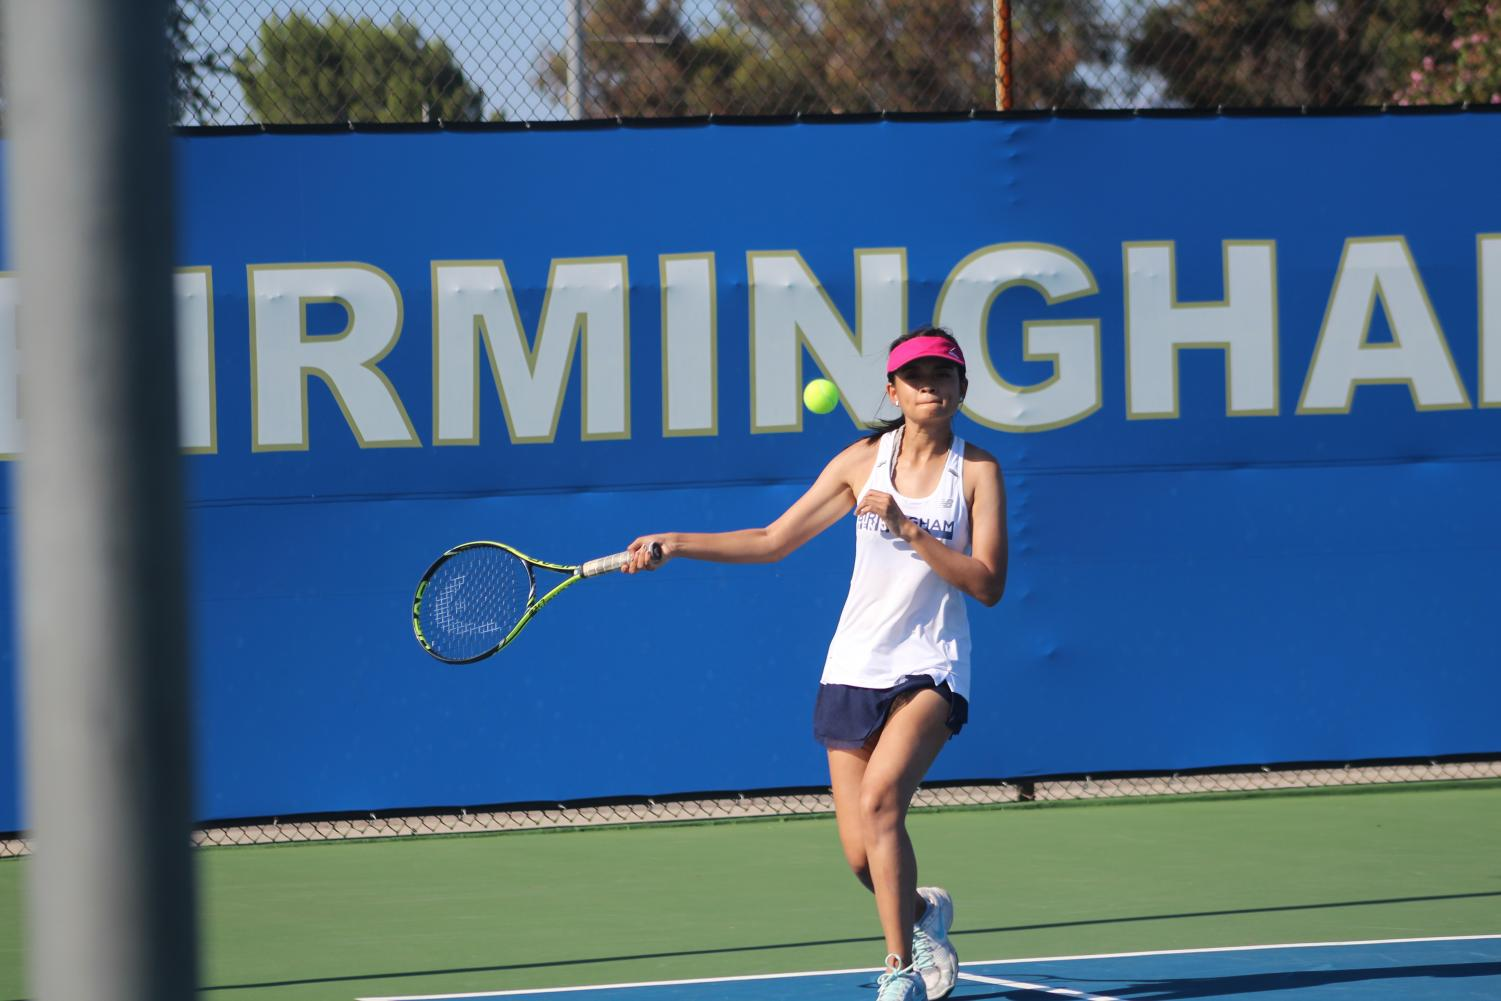 Christine Valenzuela swings her racket in her doubles match on Aug. 23 against Marshall High School.